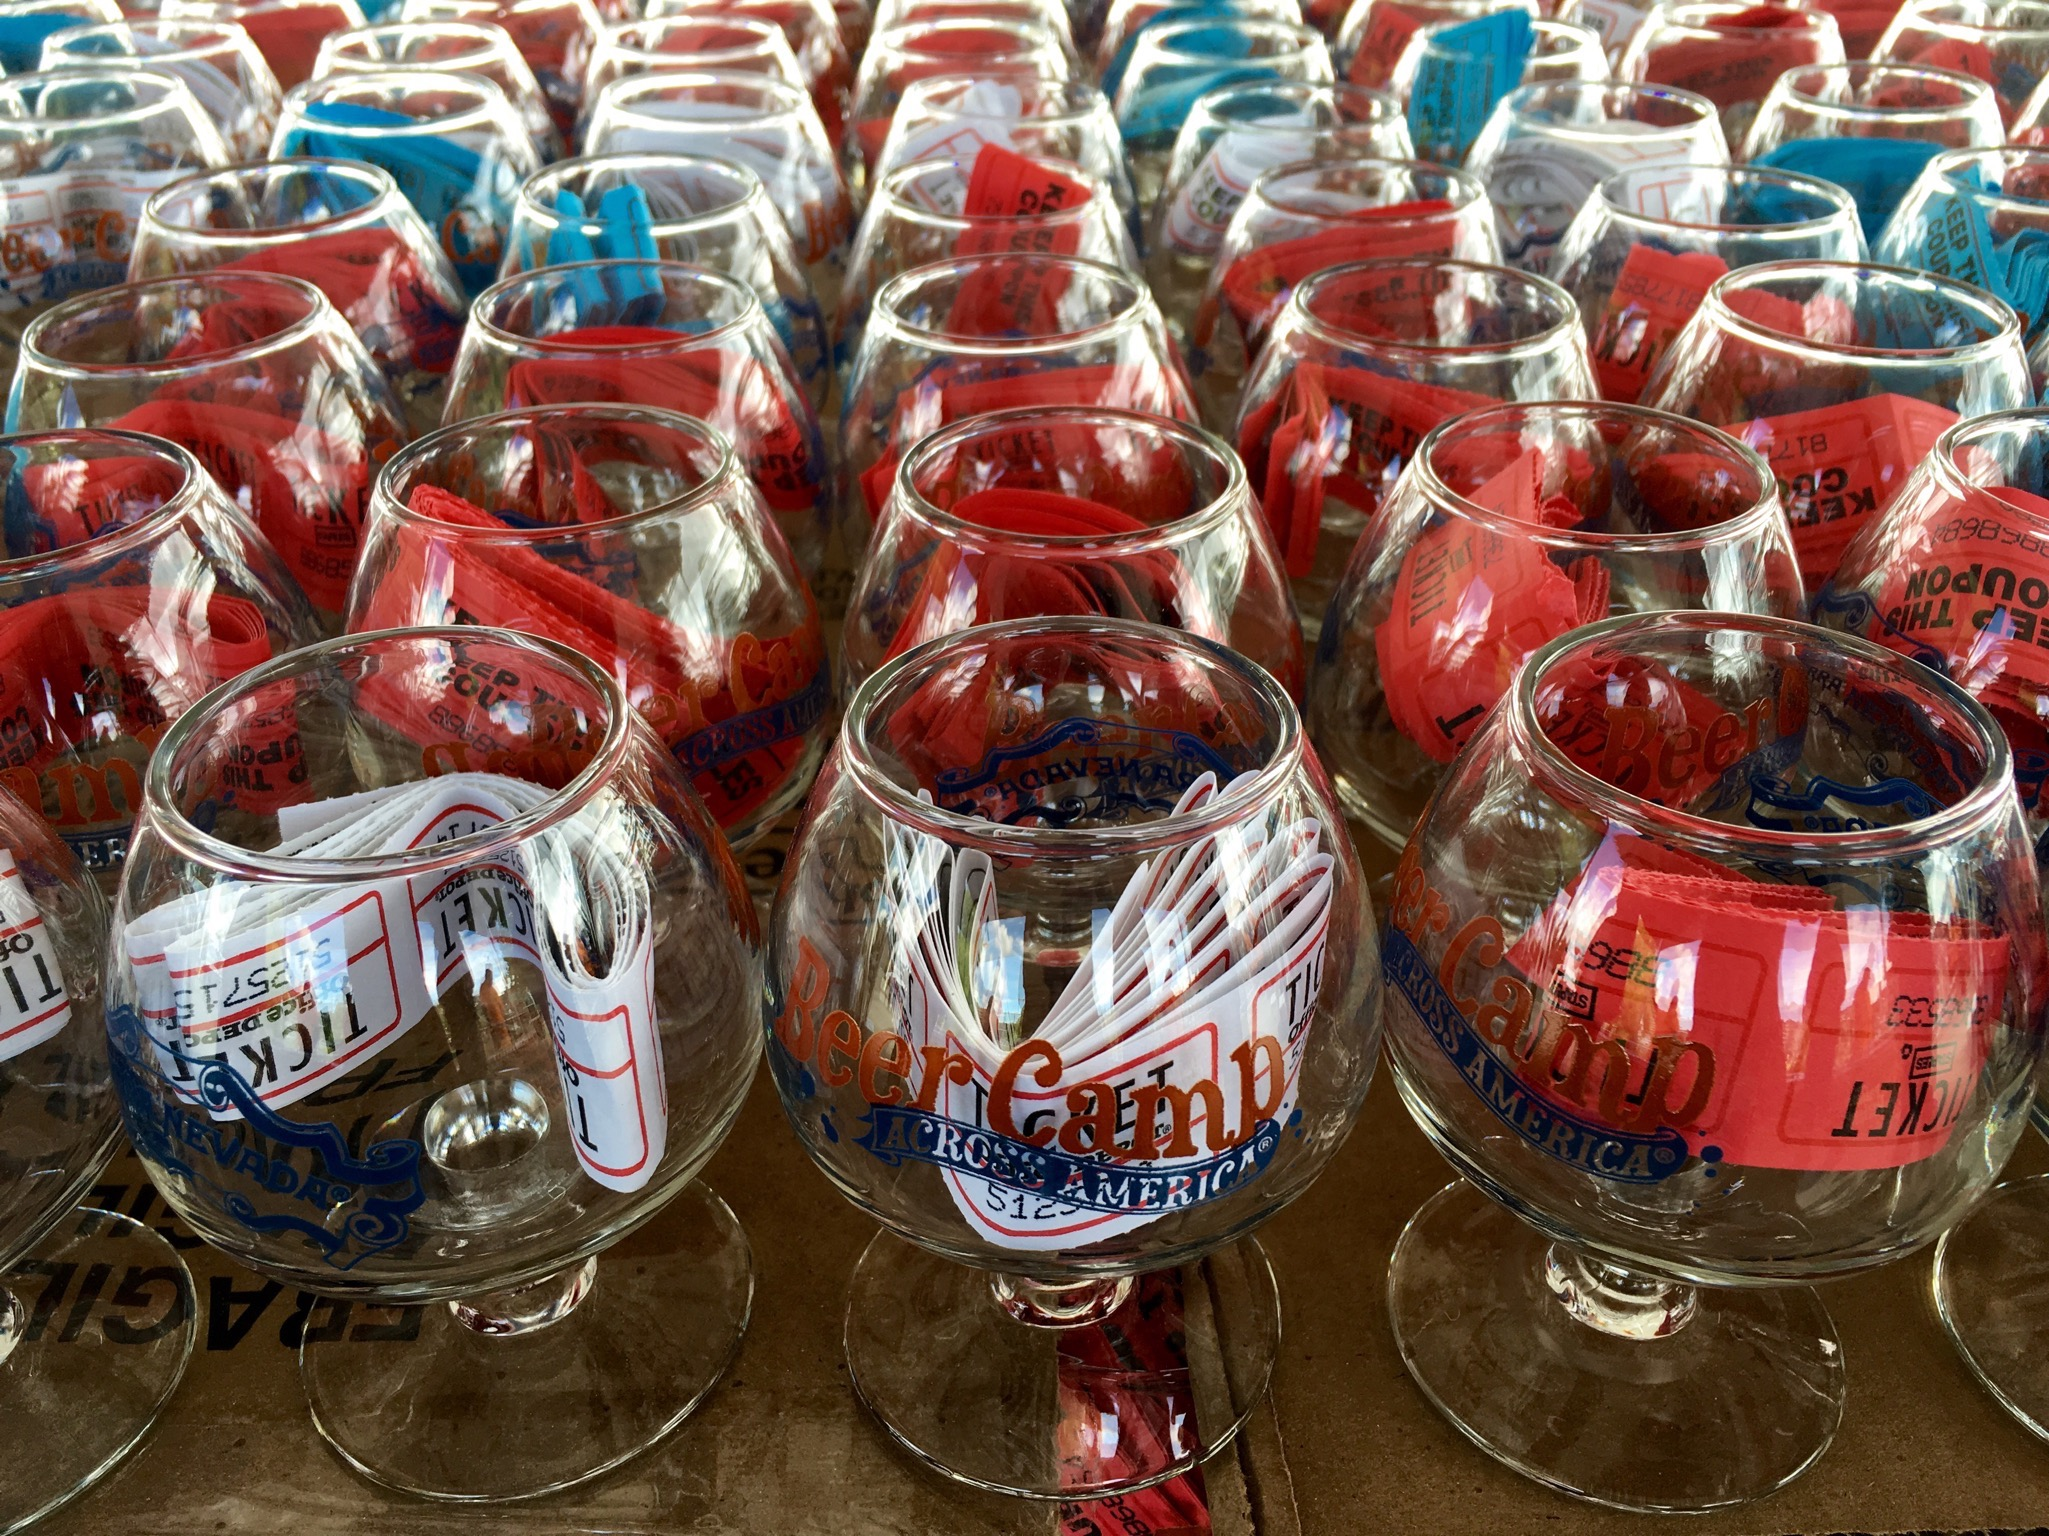 Glassware is all ready to go at Sierra Nevada Beer Camp Across America Festival in Seattle. (photo by Cat Stelzer)